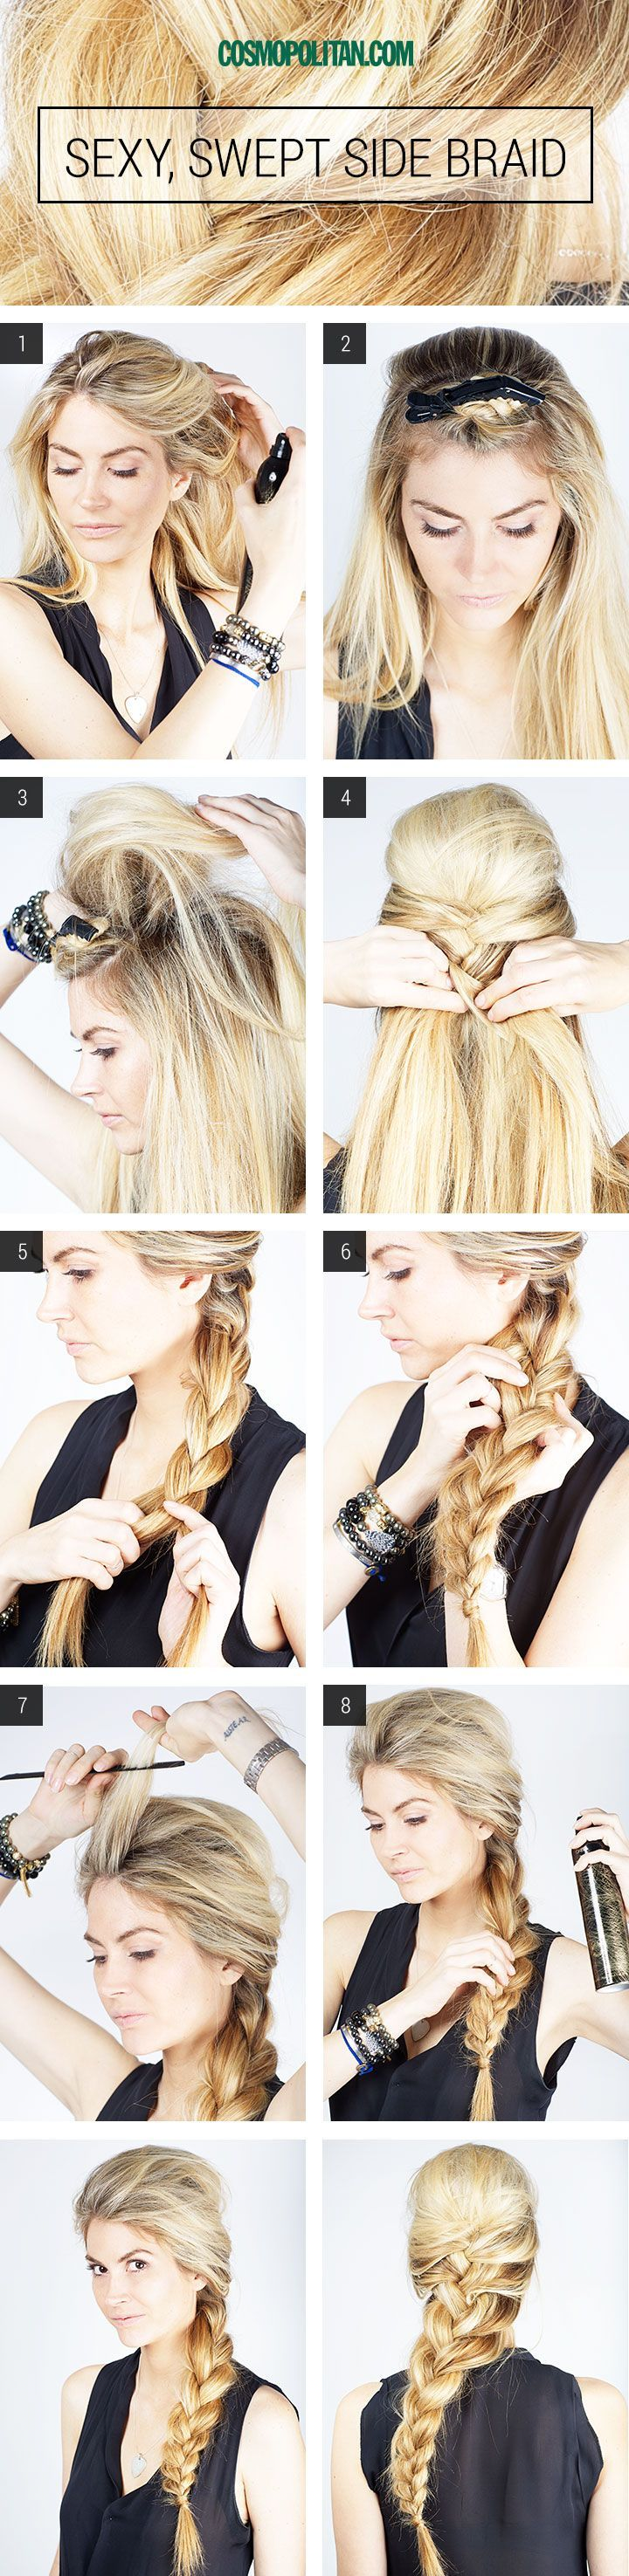 Hair How-To: Sexy Side Braid | Hair style, Elsa hair and Elsa braid